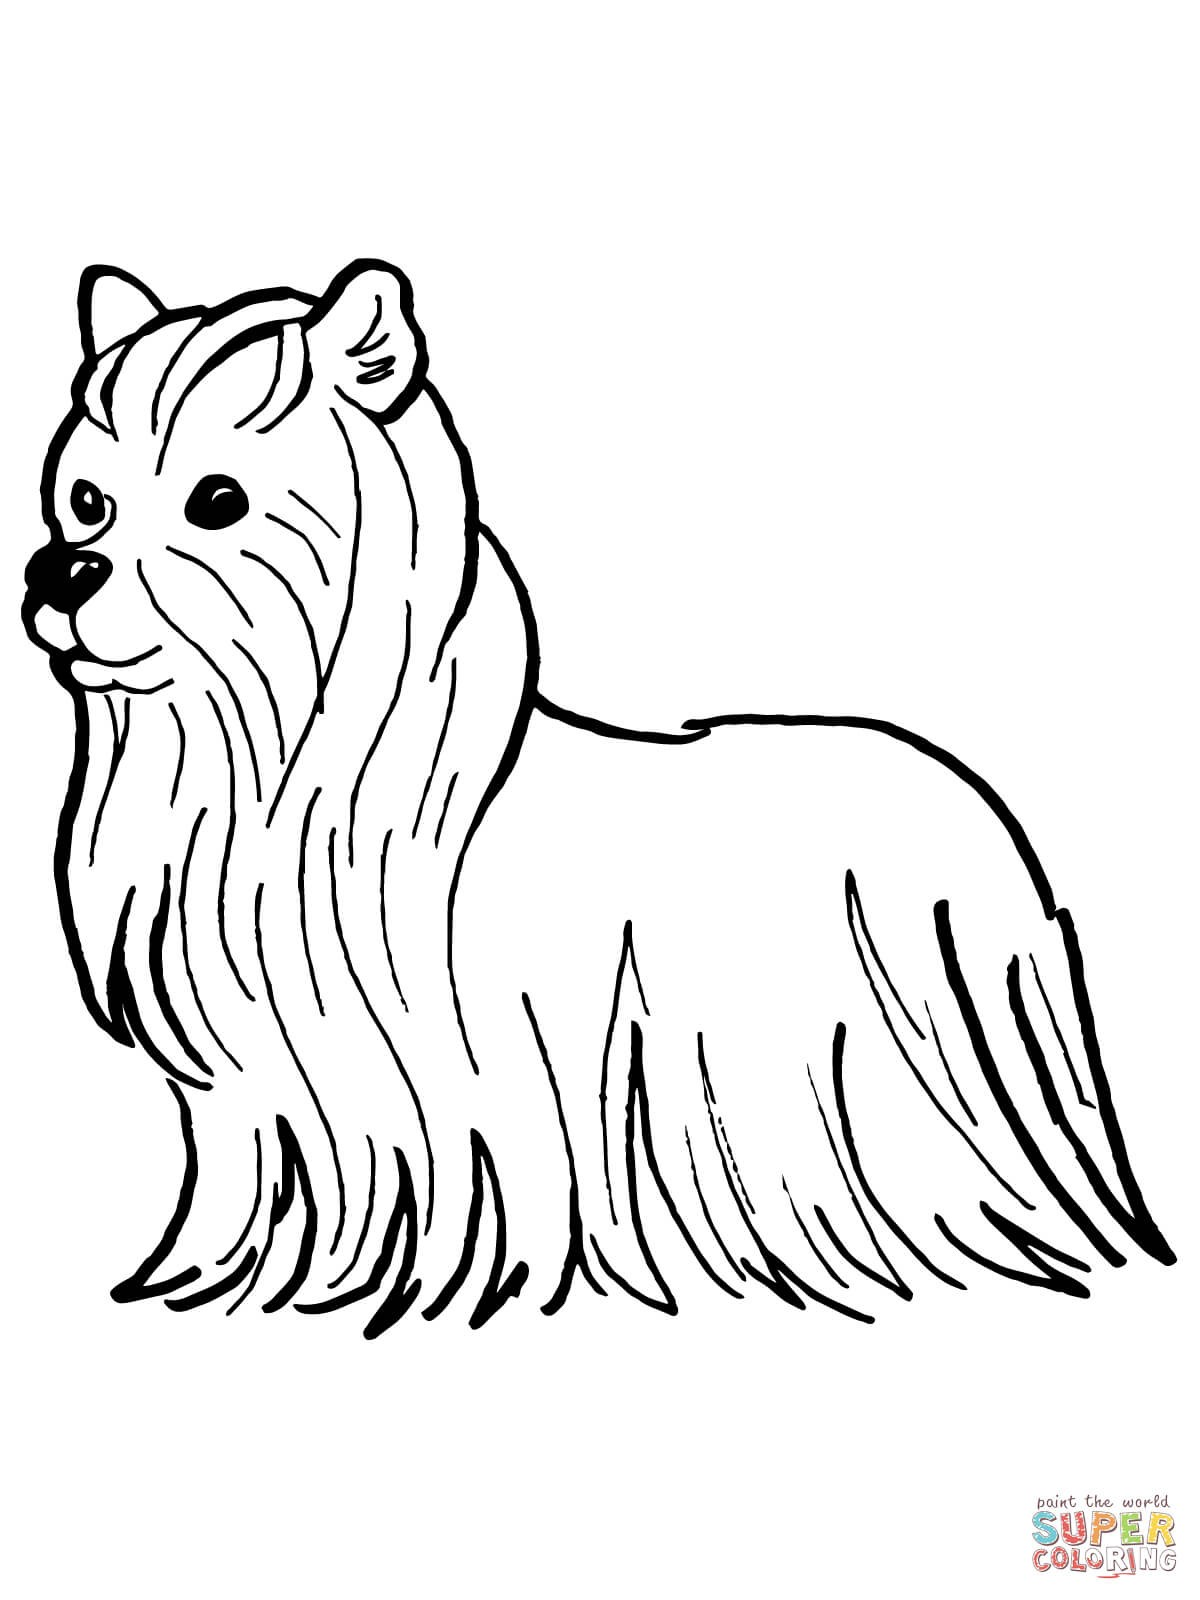 yorkie coloring sheet yorkshire coloring pages coloring pages to download and coloring yorkie sheet